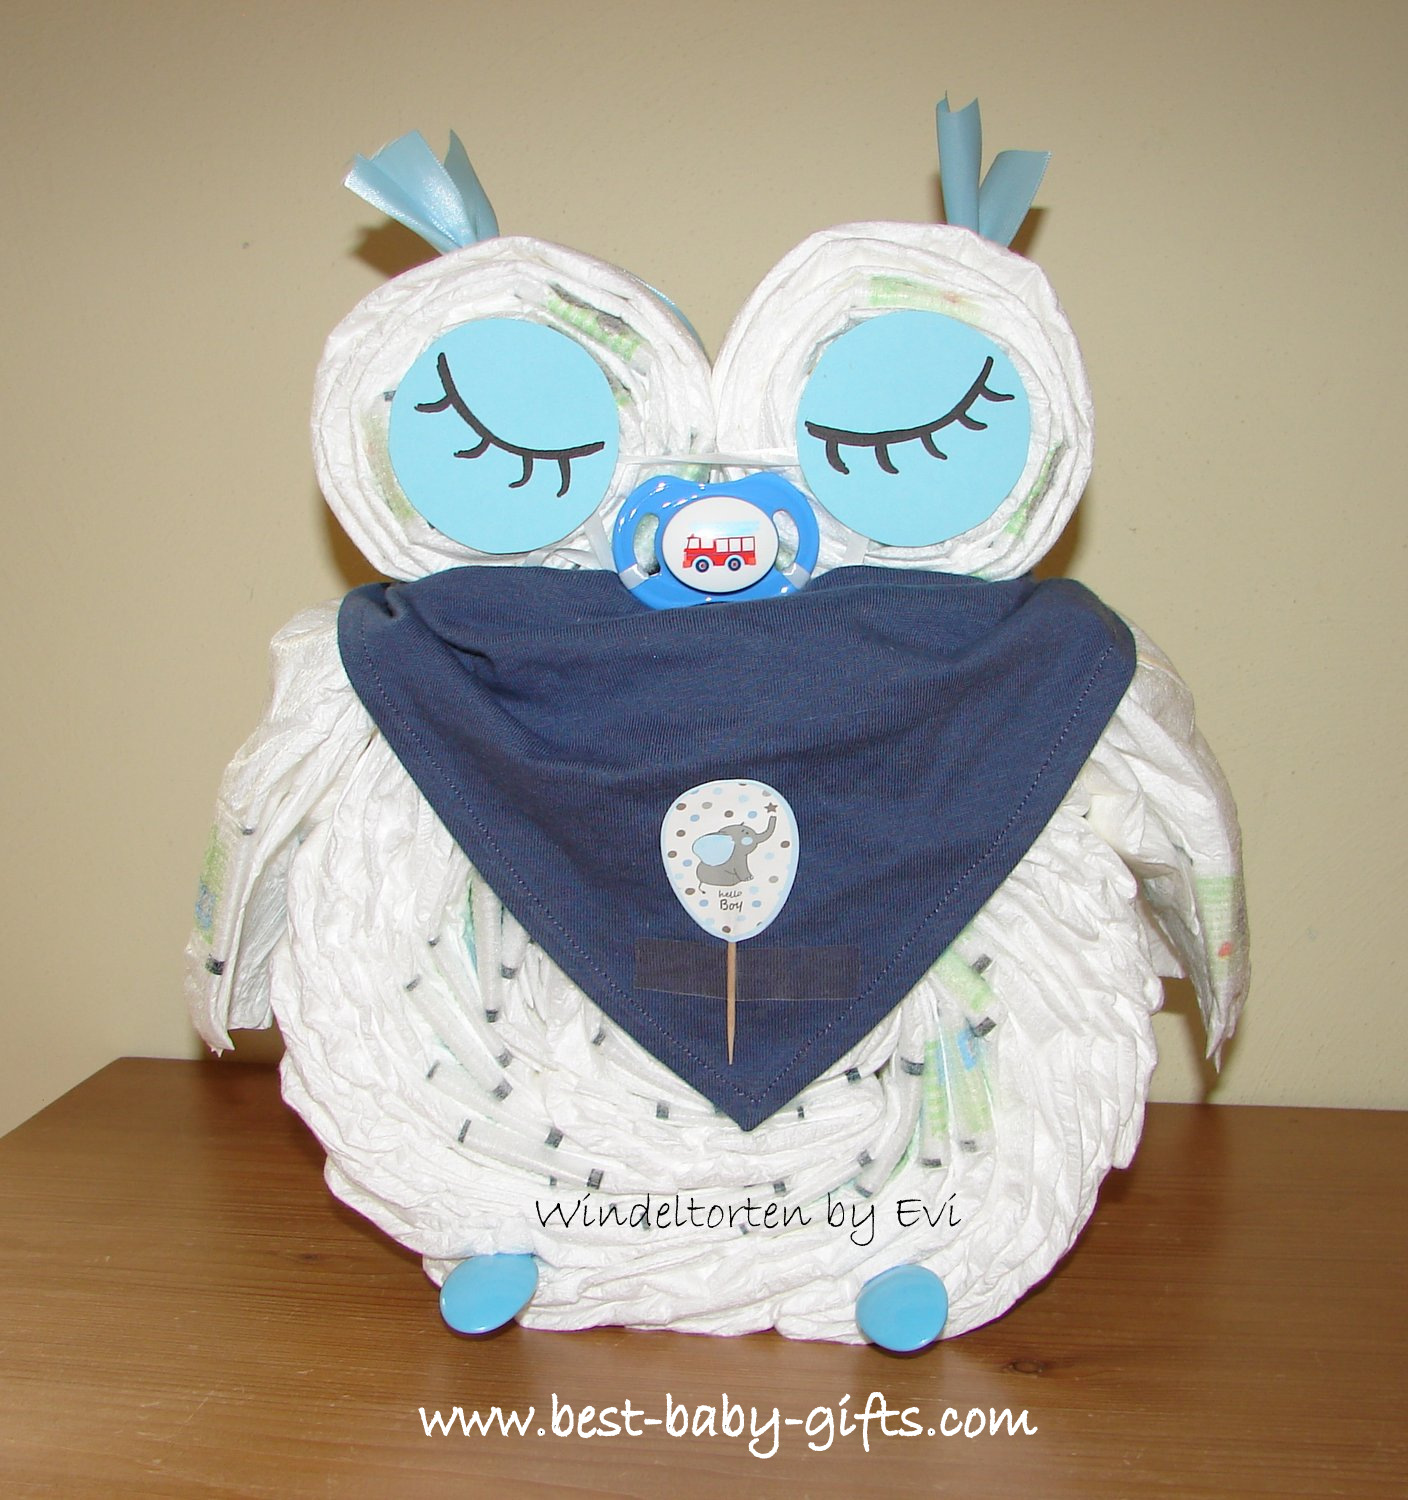 diaper owl for baby boy in blue with sleepy eyes, a blue bib and a pacifier with a red fire truck on